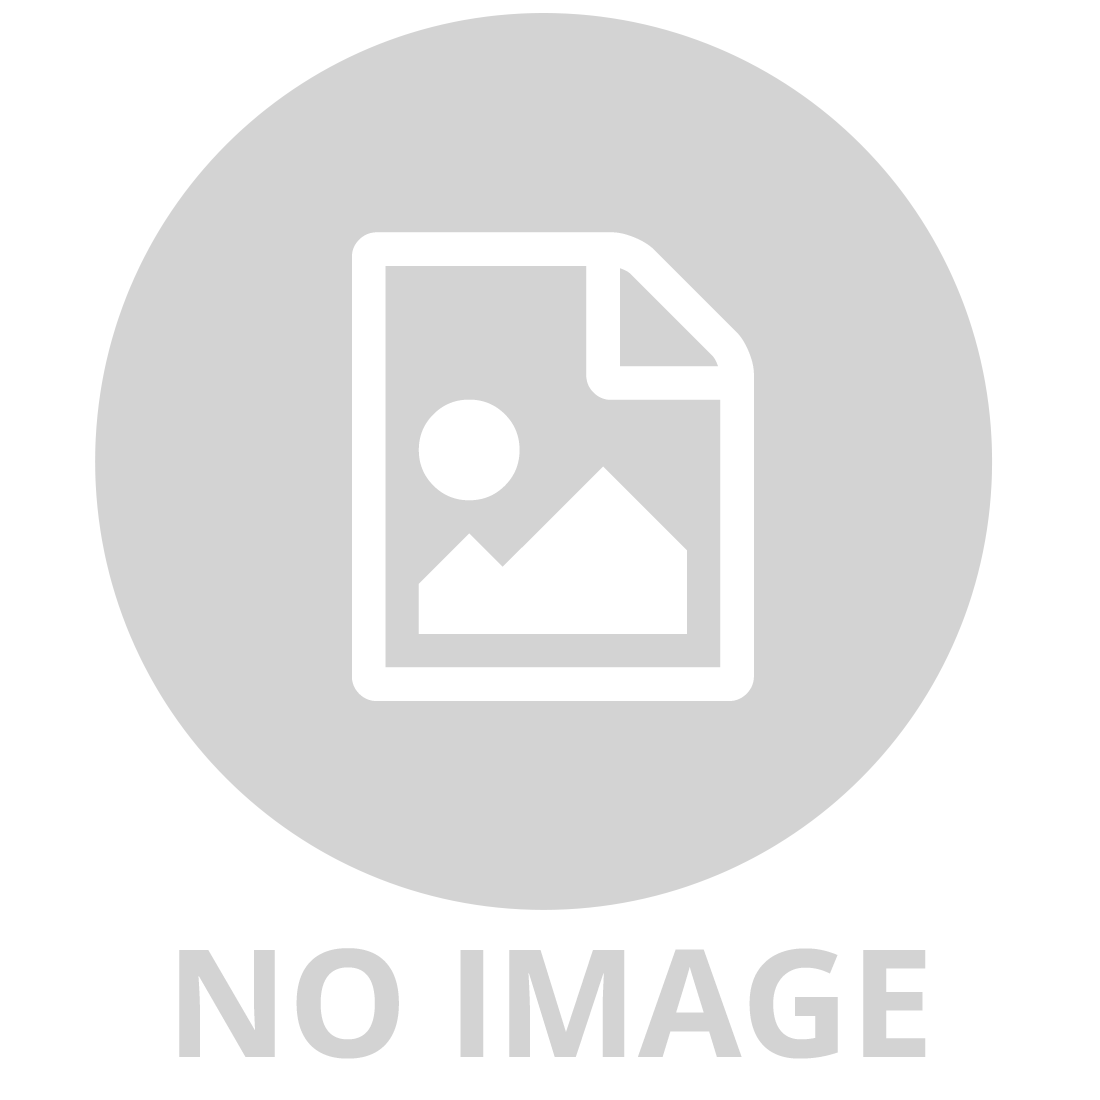 Newark Black Pendants group